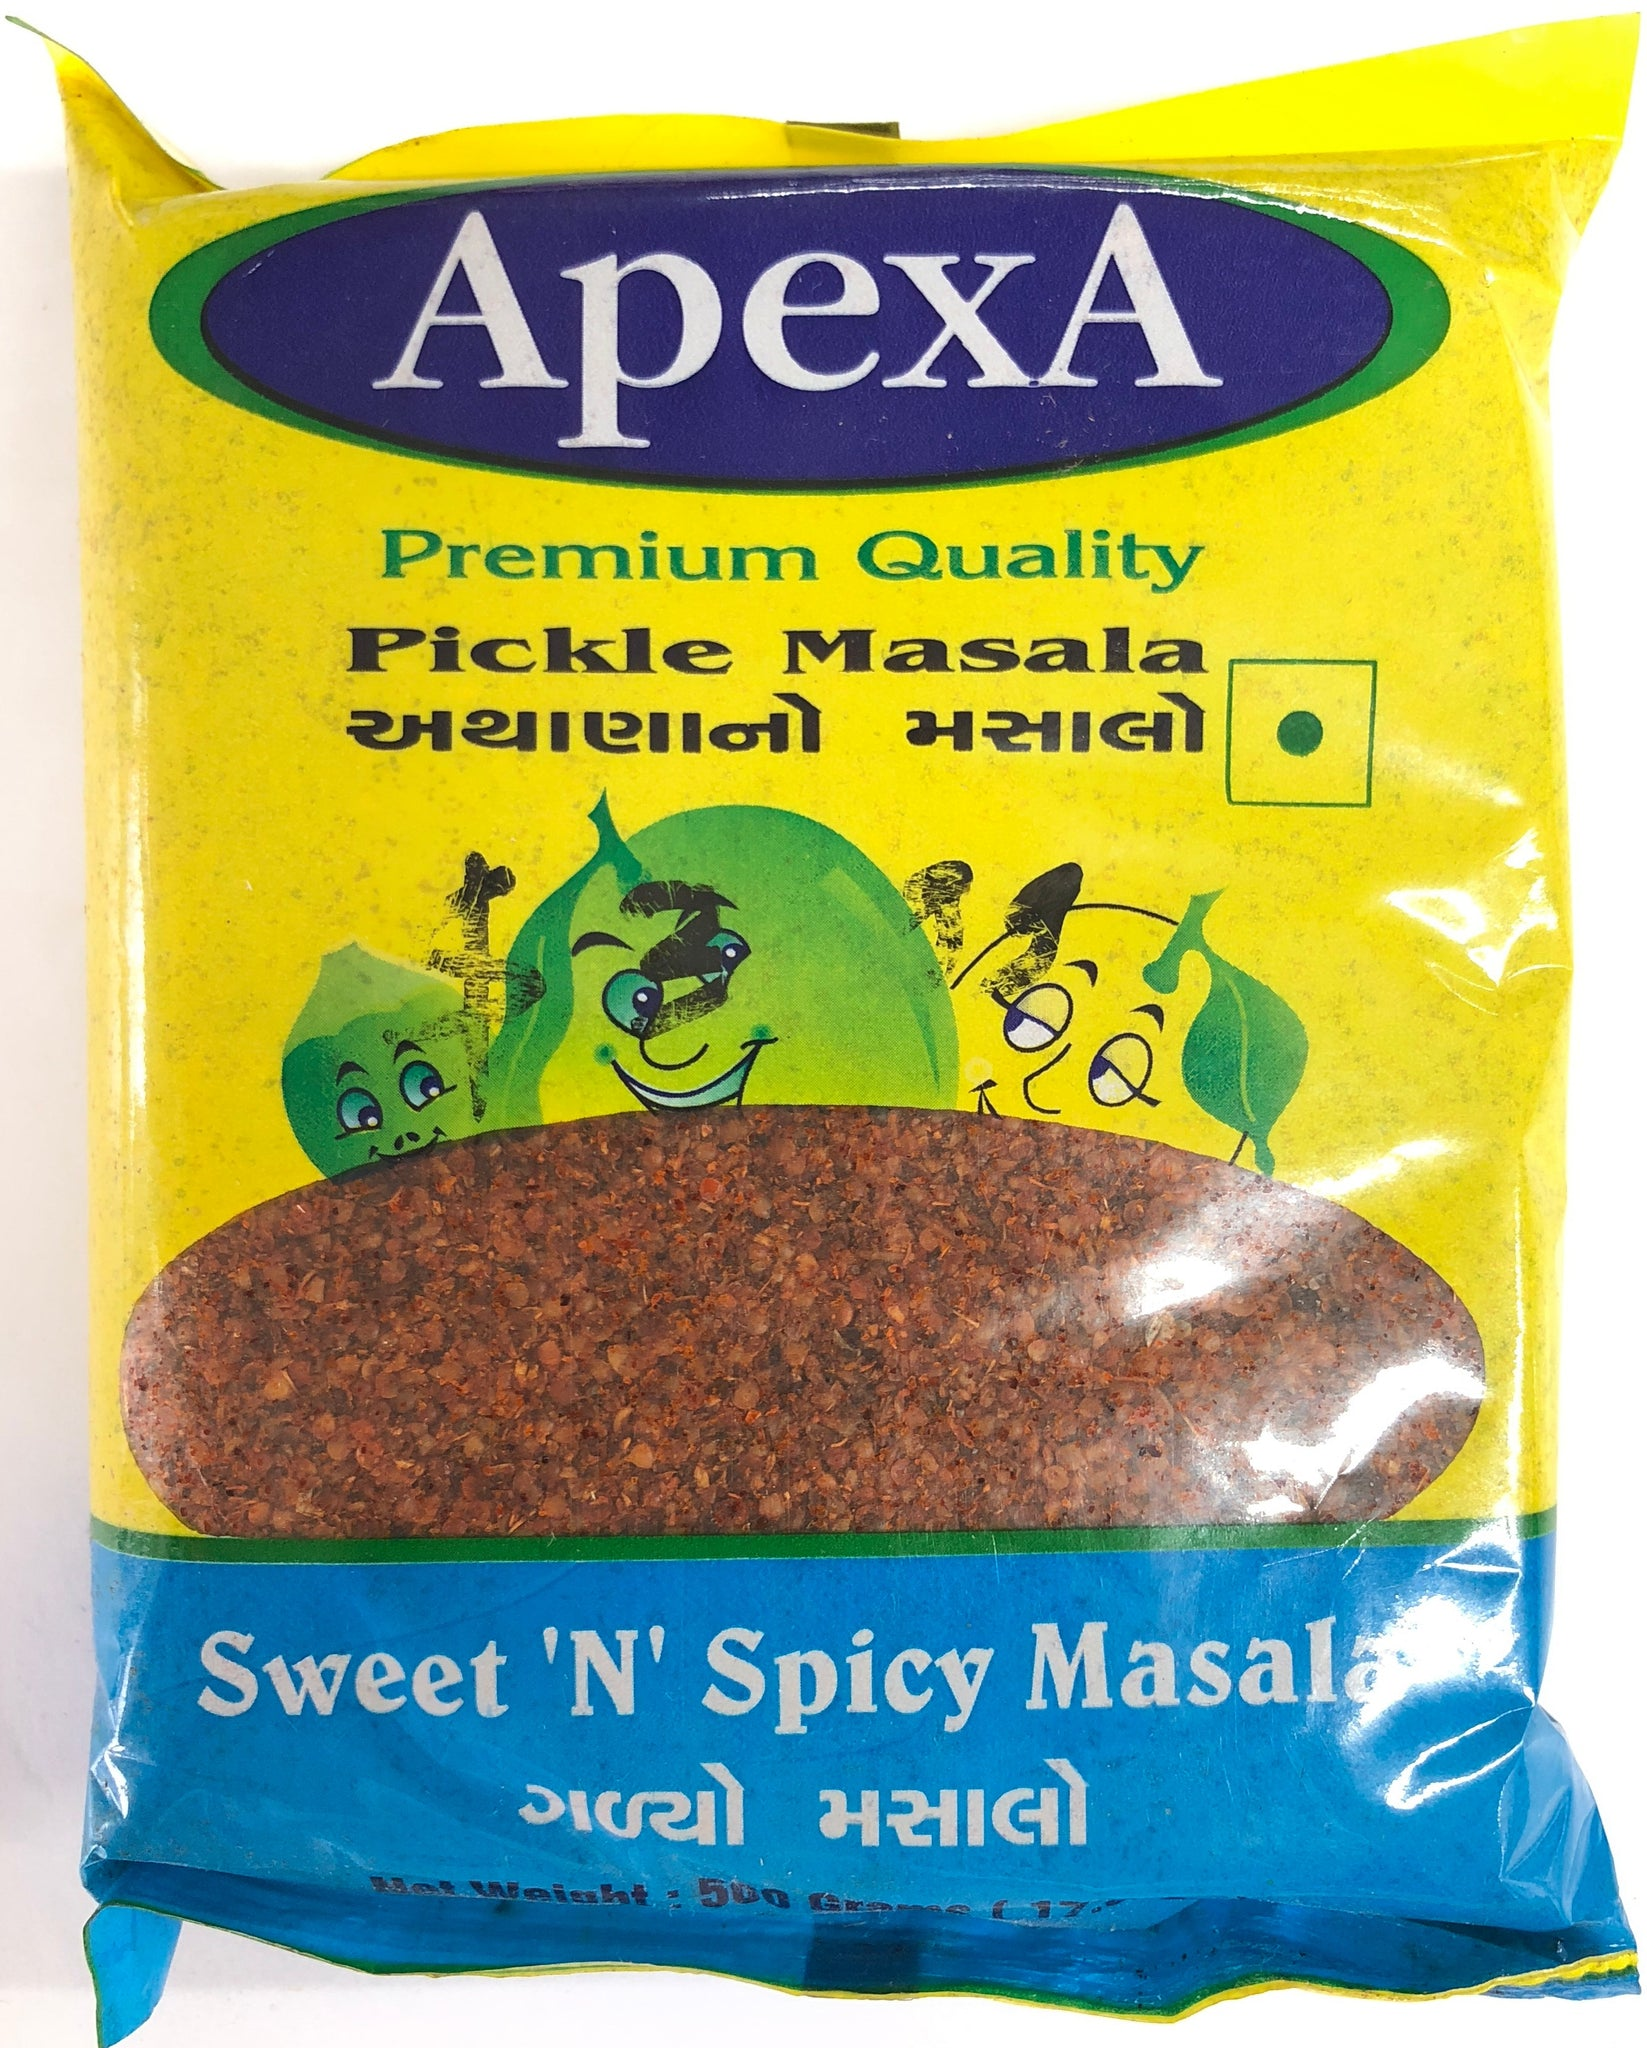 Pickle Masala Sweet N' Spicy